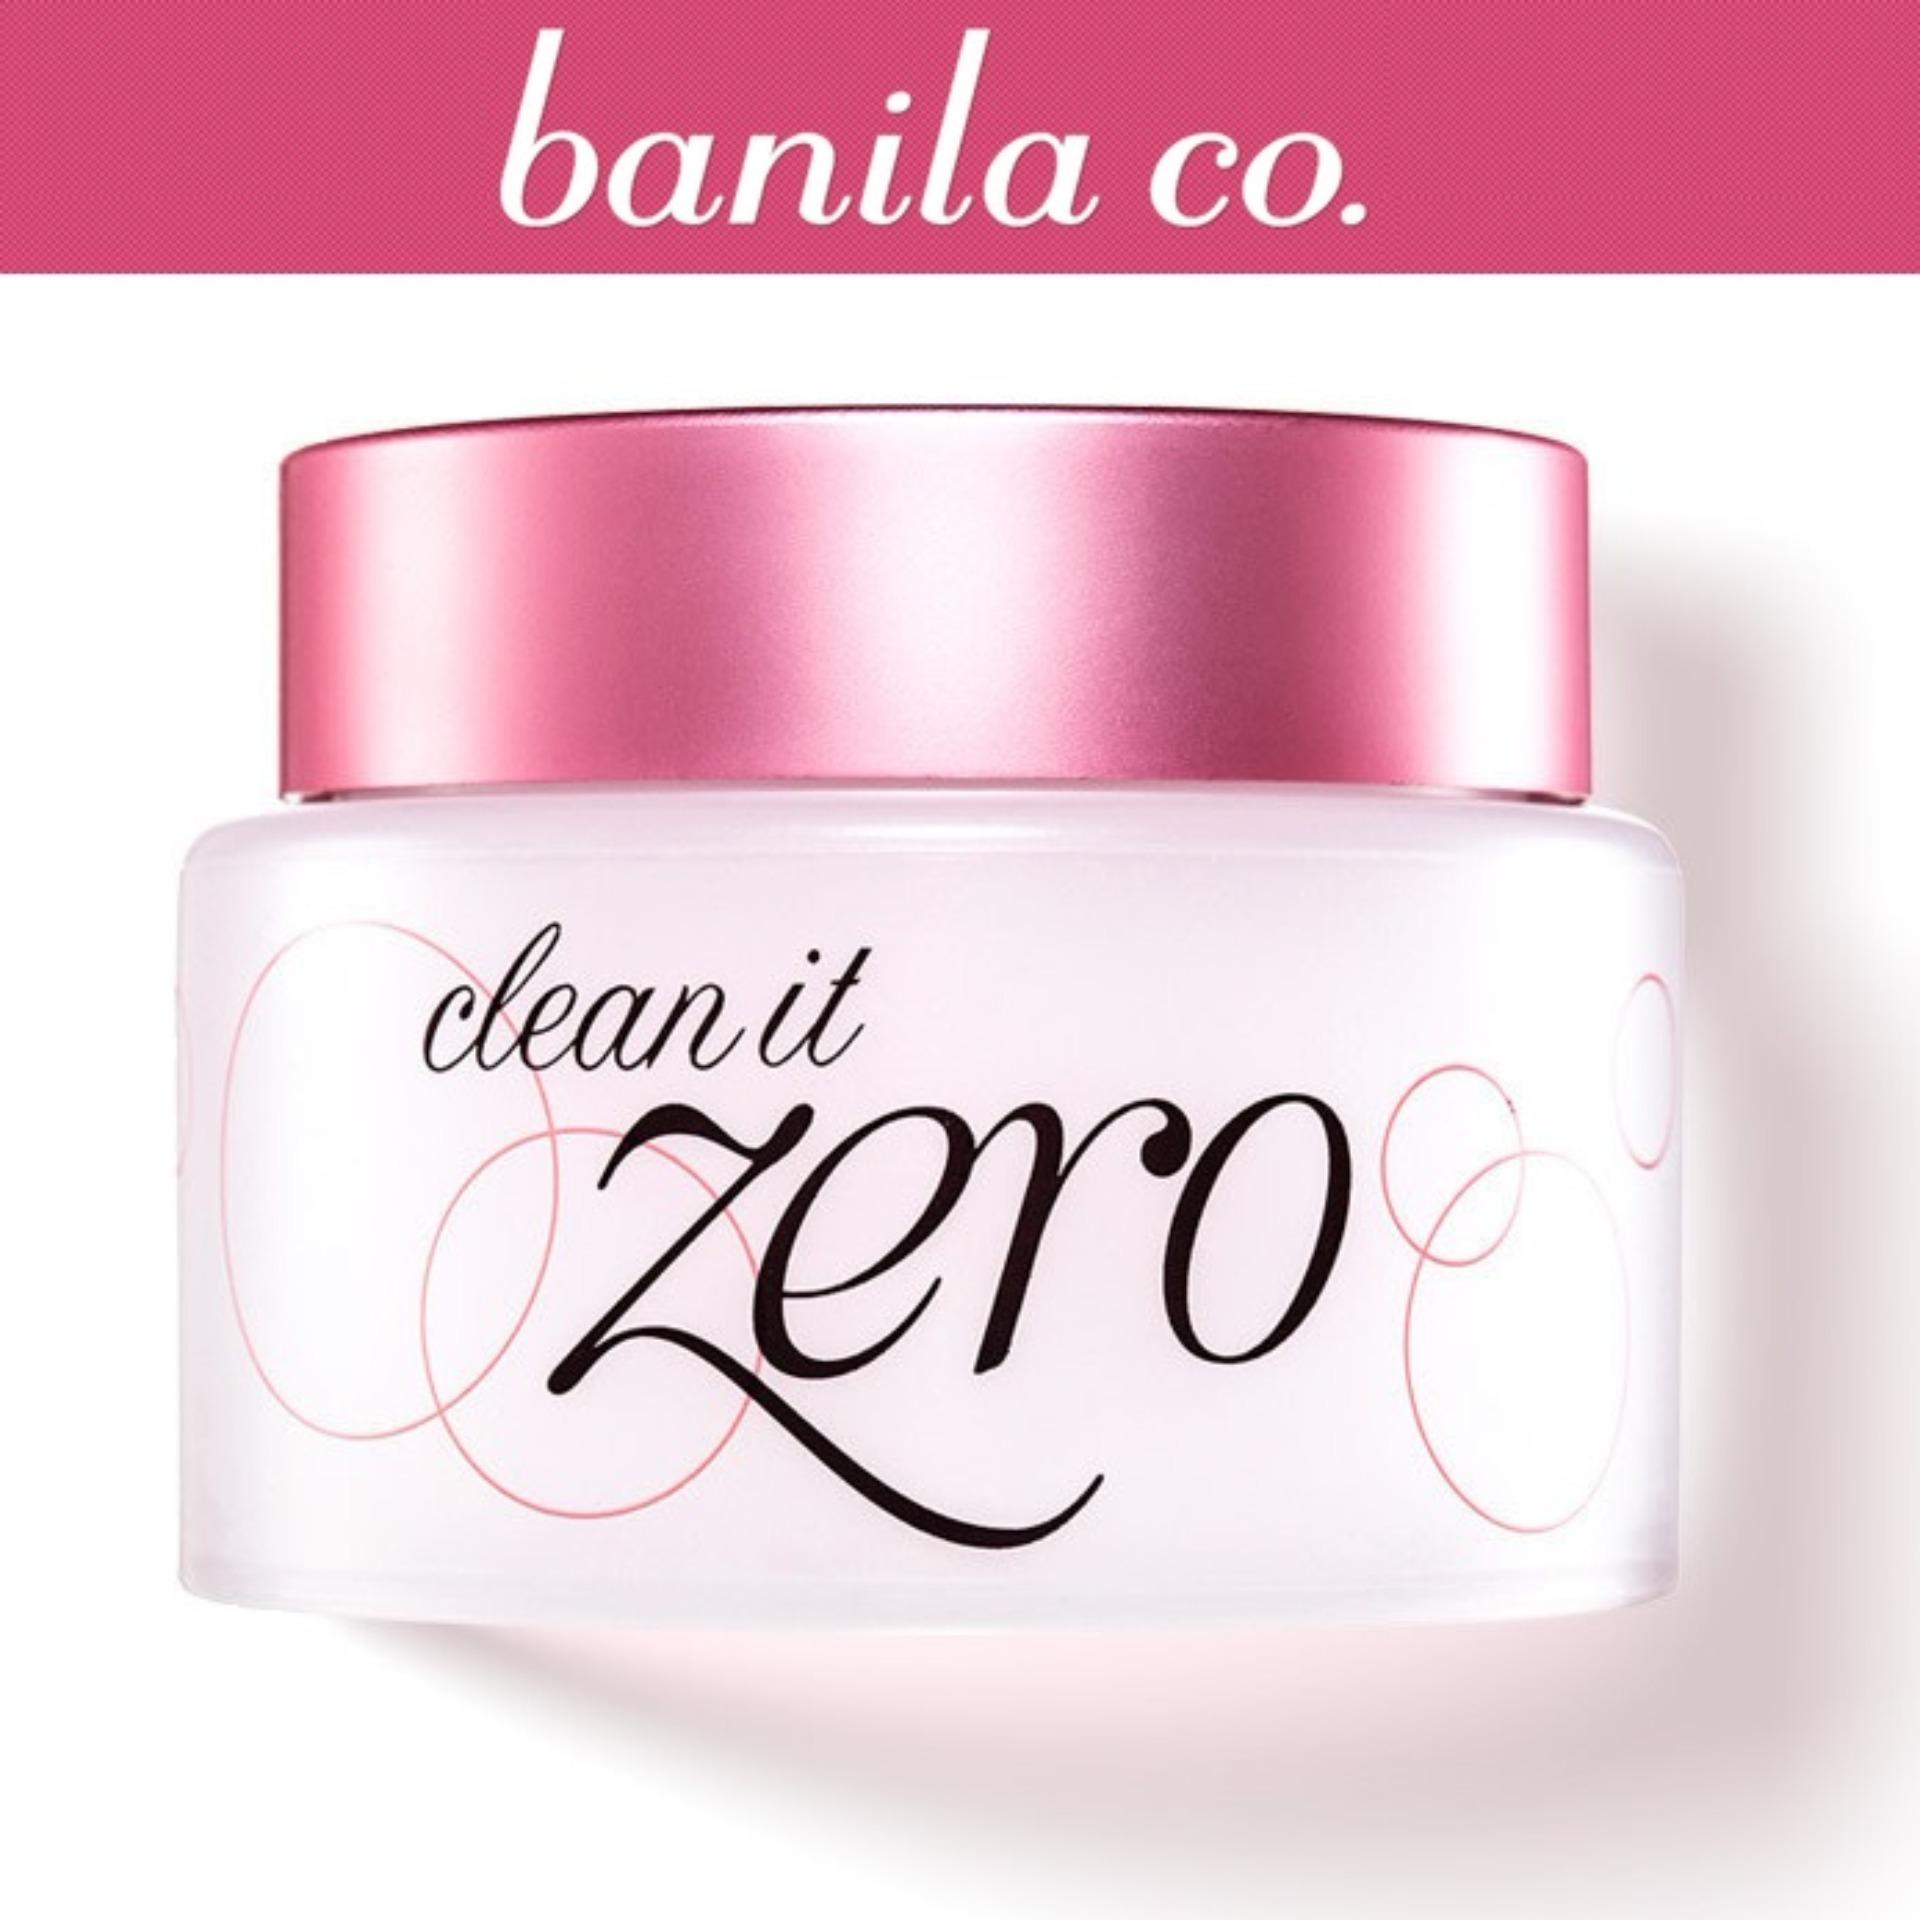 Retail Price Banila Co Clean It Zero 100Ml